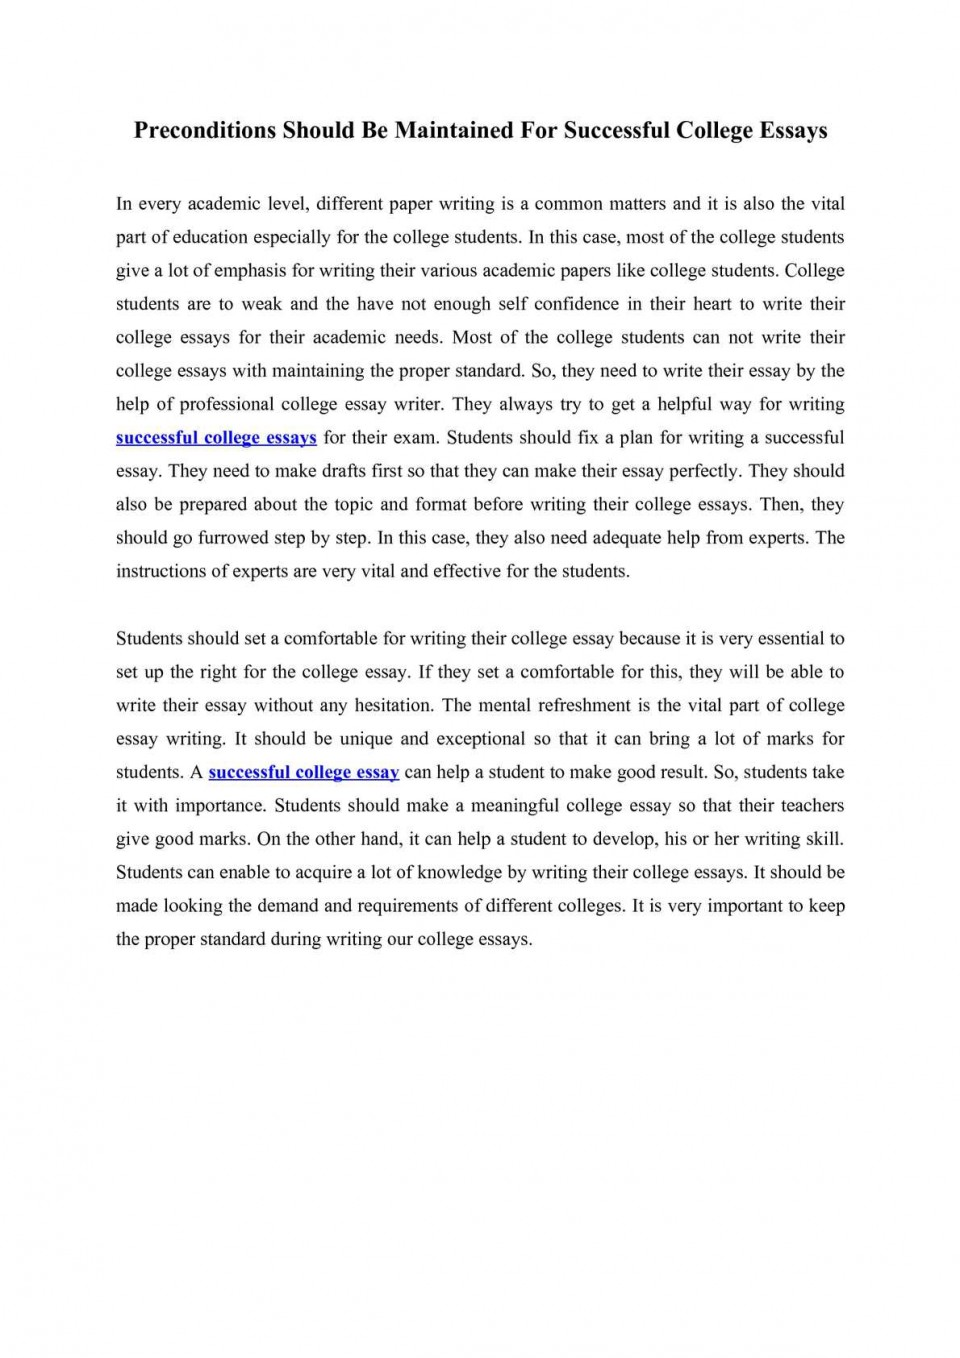 015 What Not To Write About In College Essay Example Preconditions Should Maintained For Successful Things Ess Application How Frightening Your Admissions 960